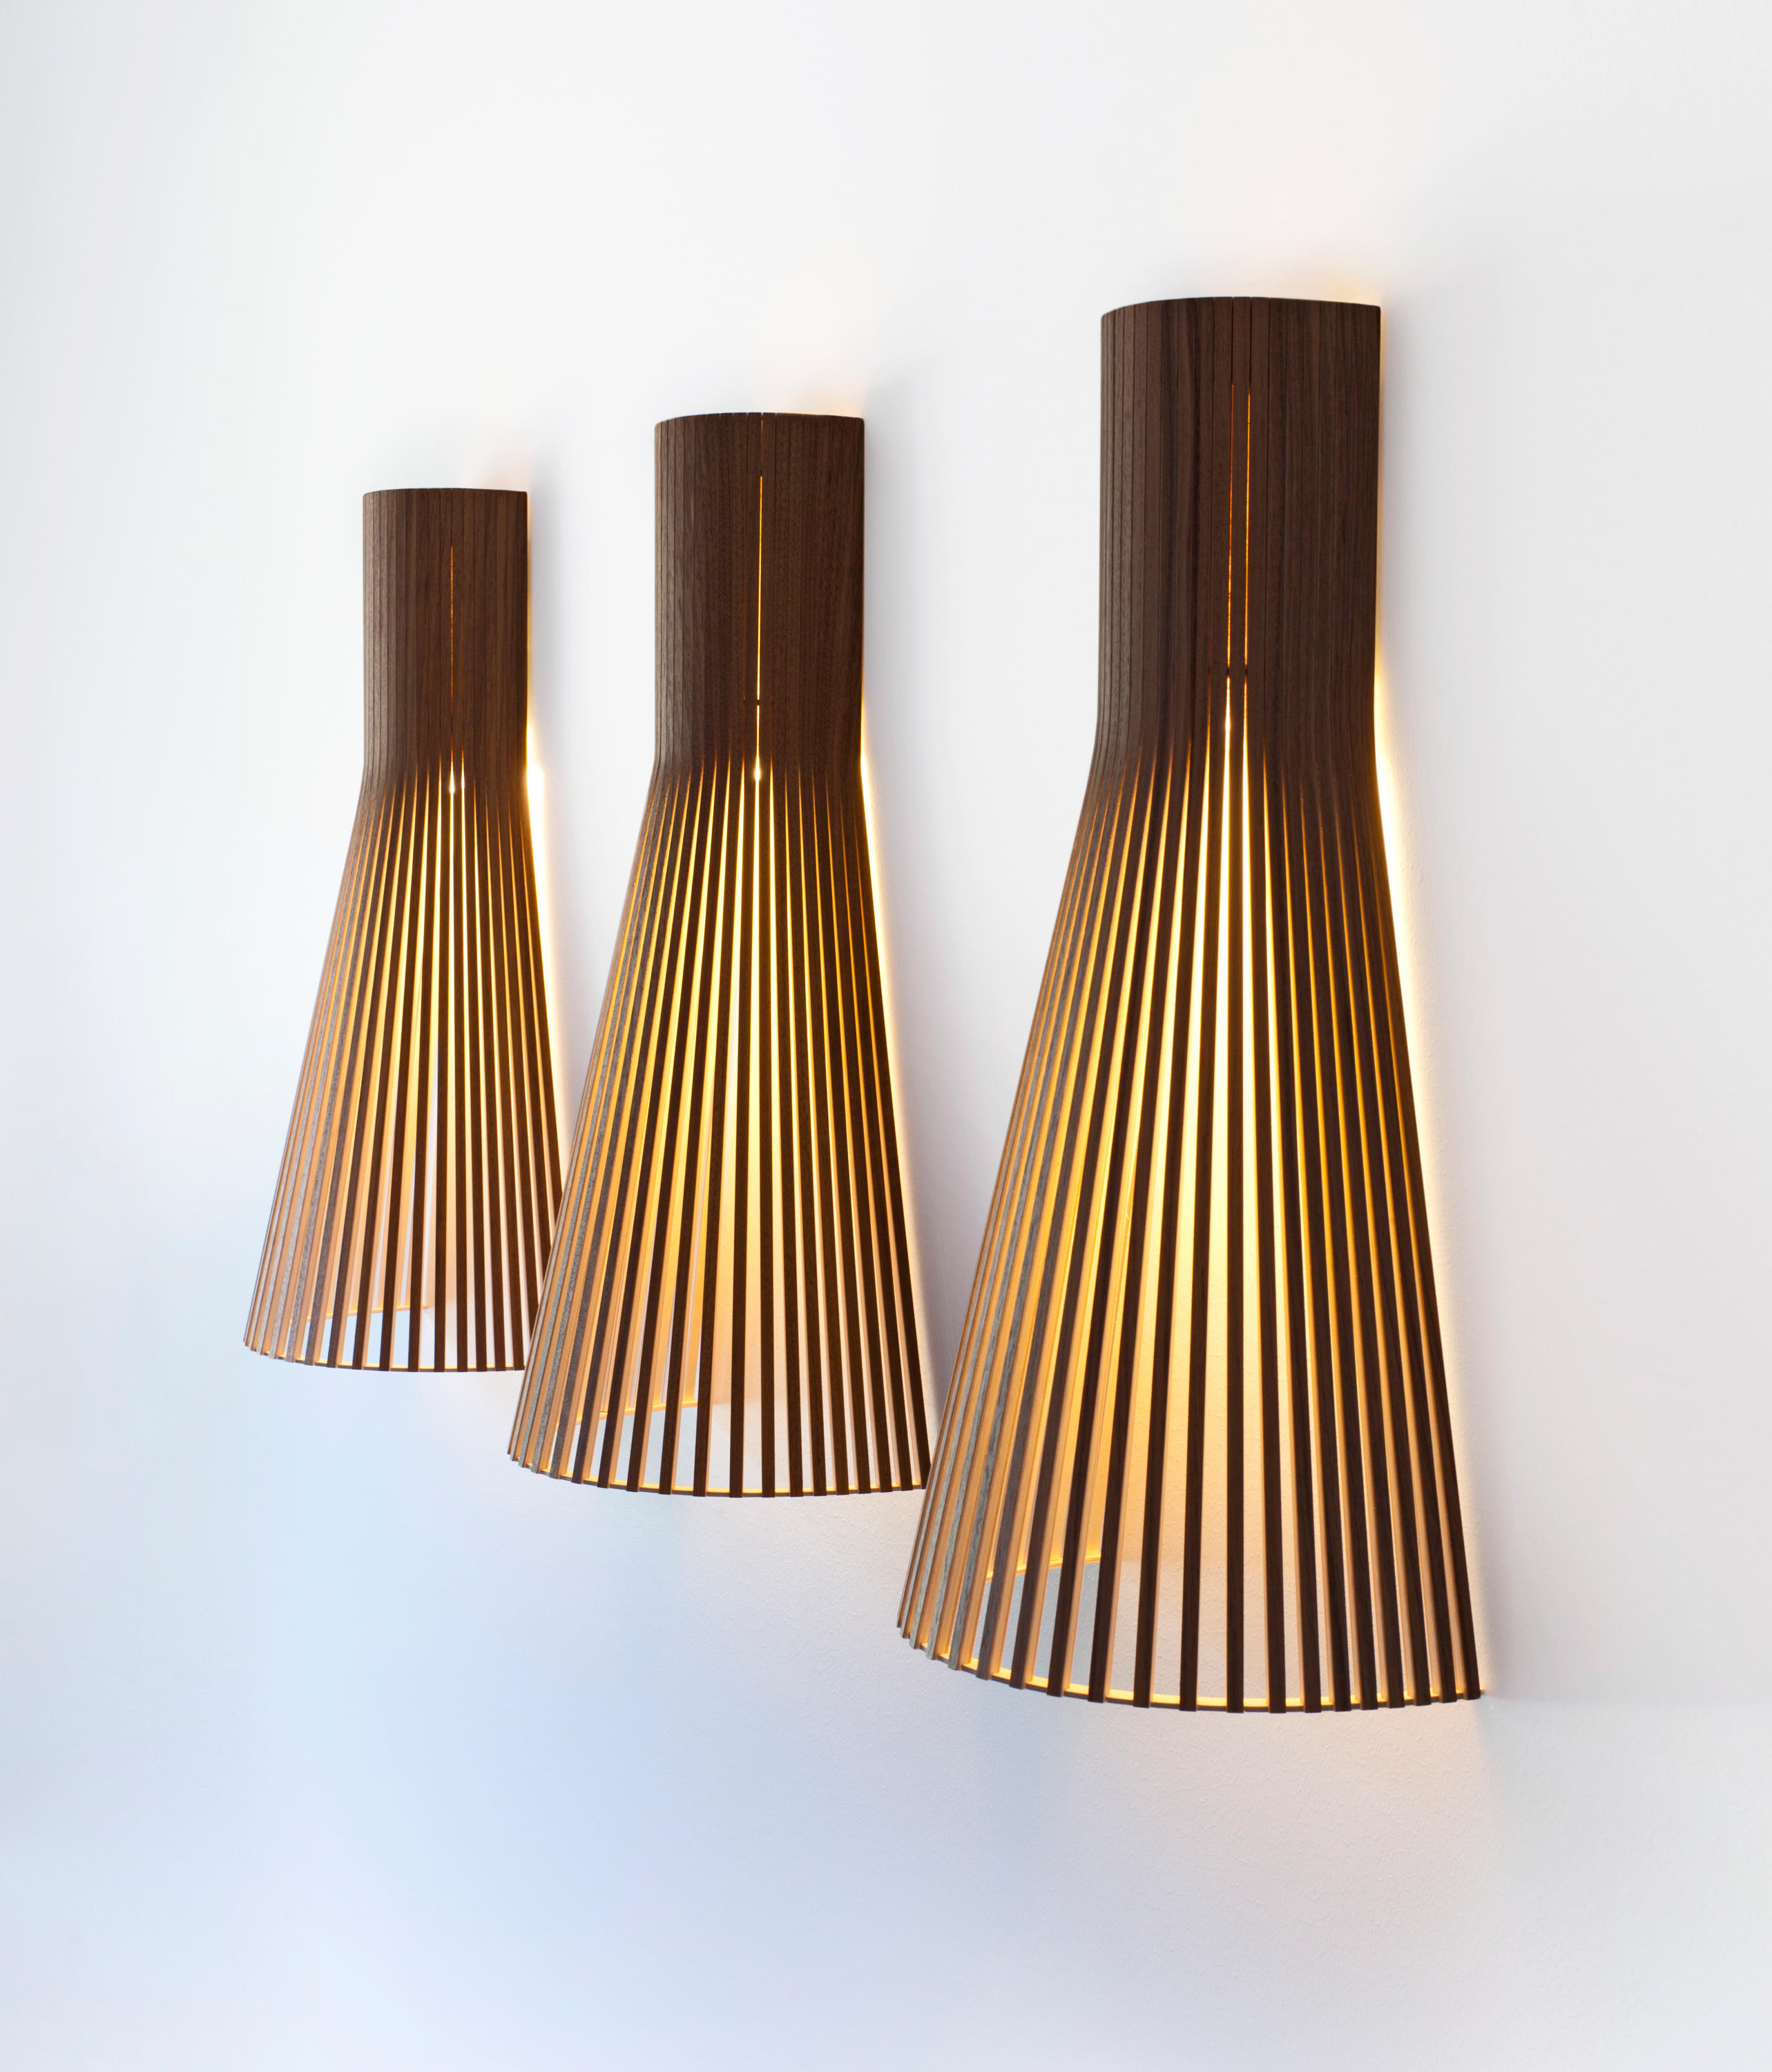 ... Secto 4230 wall lamp by Secto Design ...